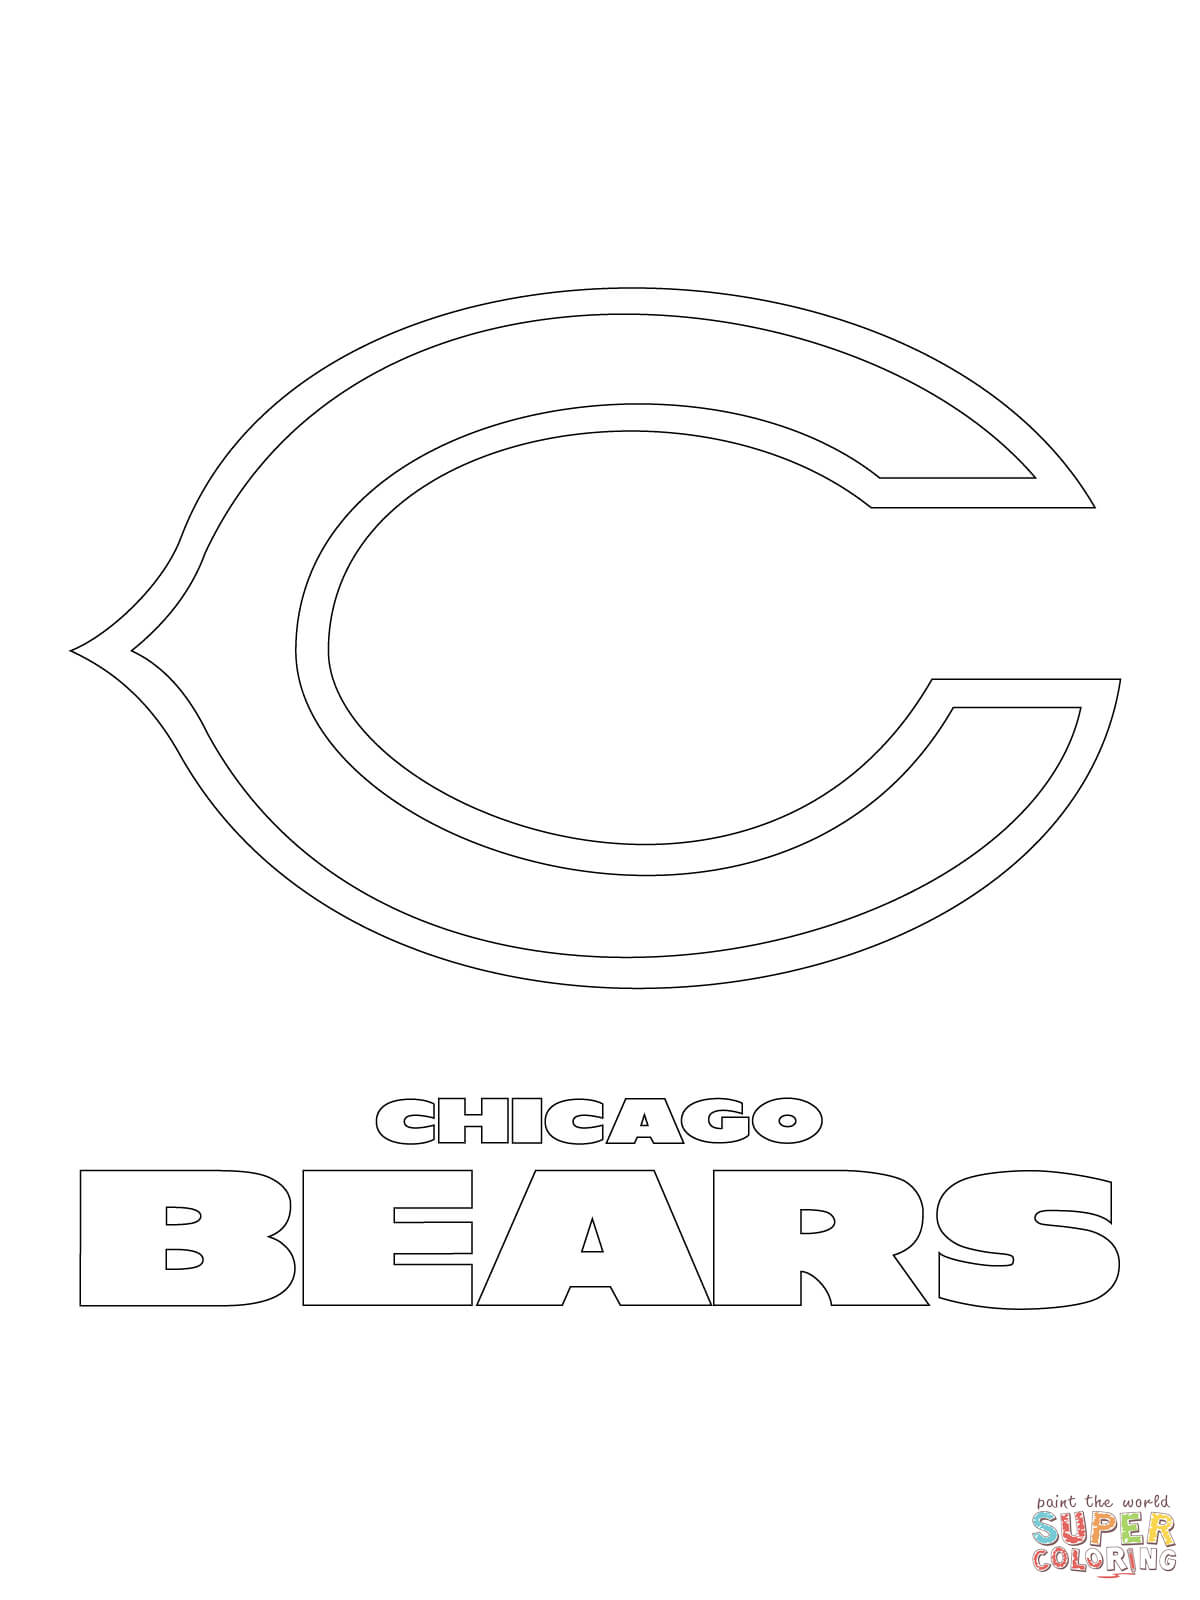 Chicago Bears Logo Coloring Page Free Printable Coloring Pages